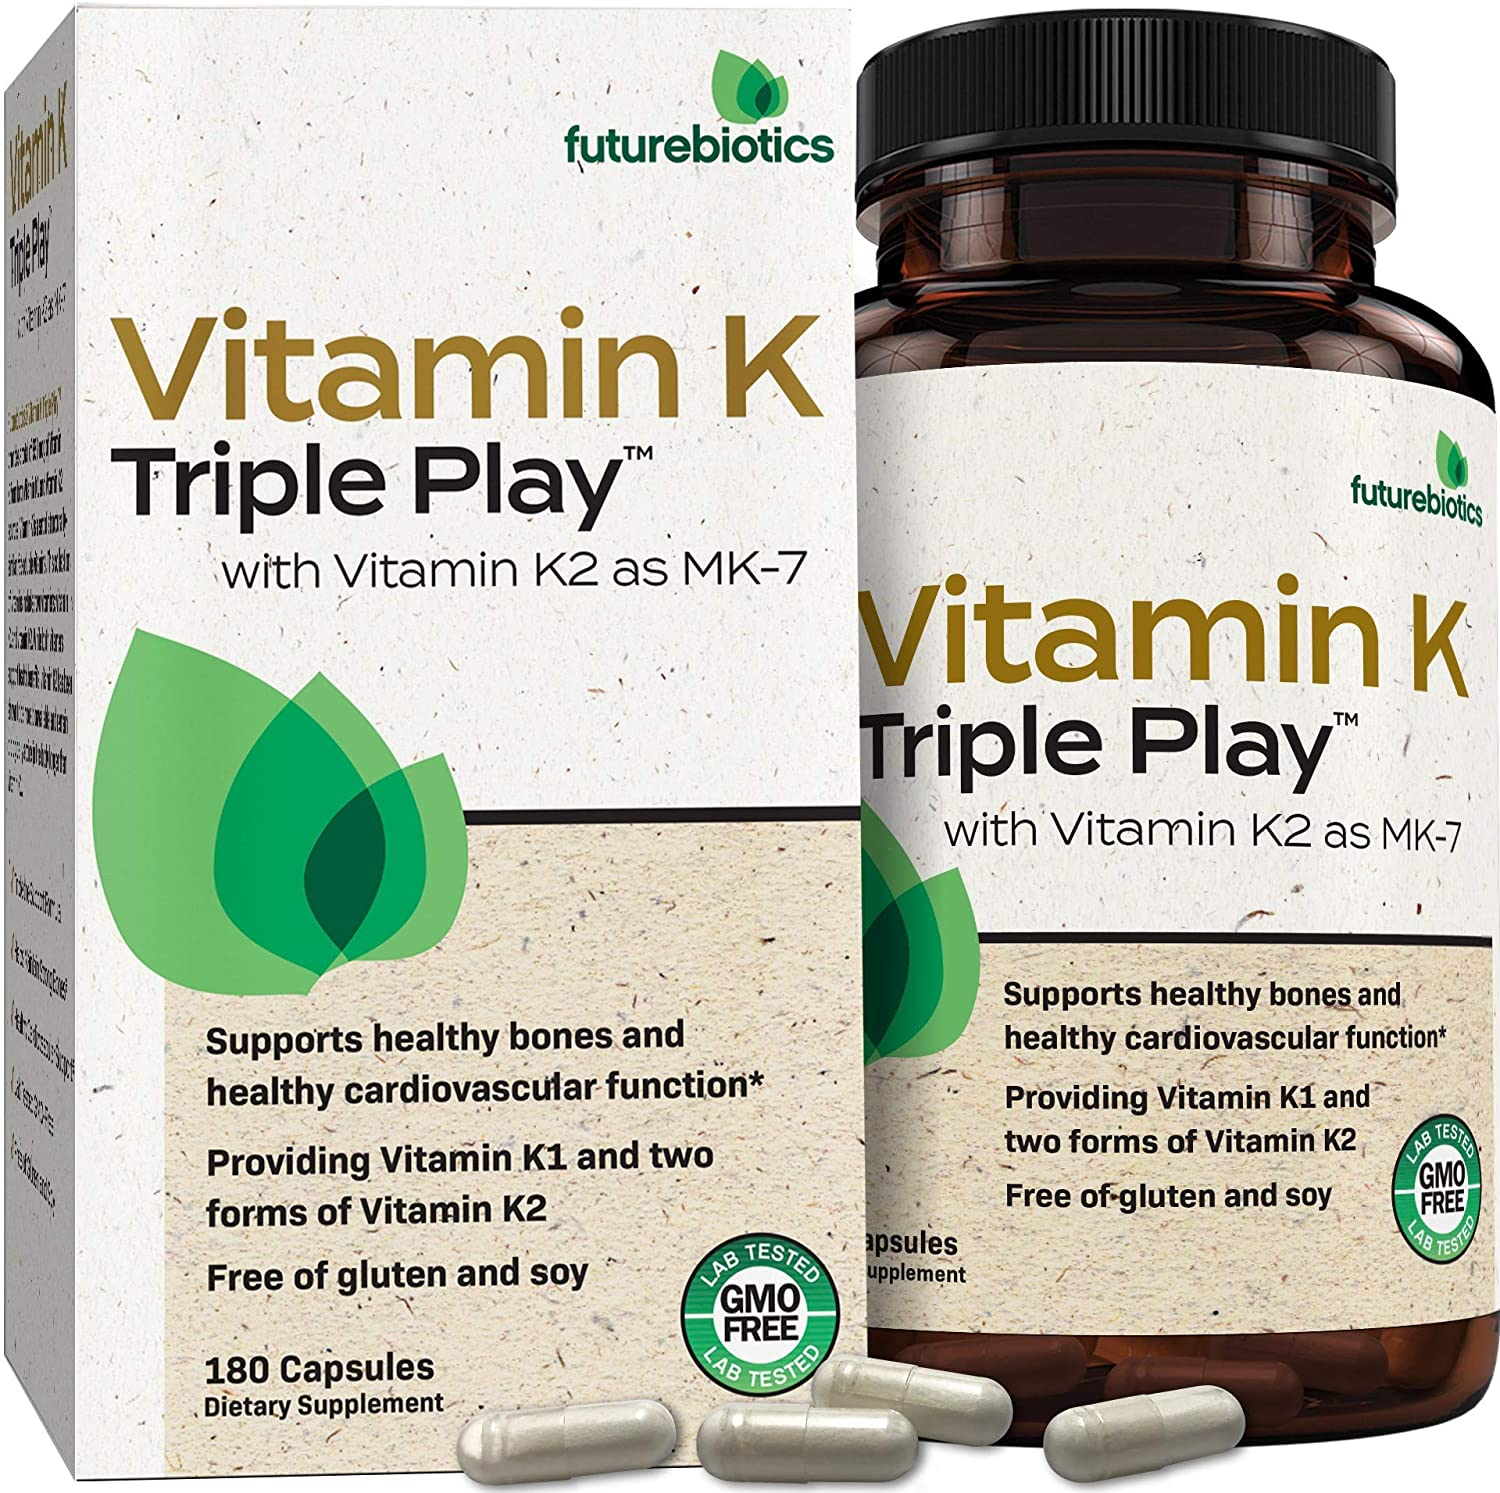 Futurebiotics Vitamin K Triple Play (Vitamin K2 MK7 / Vitamin K2 MK4 / Vitamin K1) Full Spectrum Complex Vitamin K Supplement, 180 Capsules